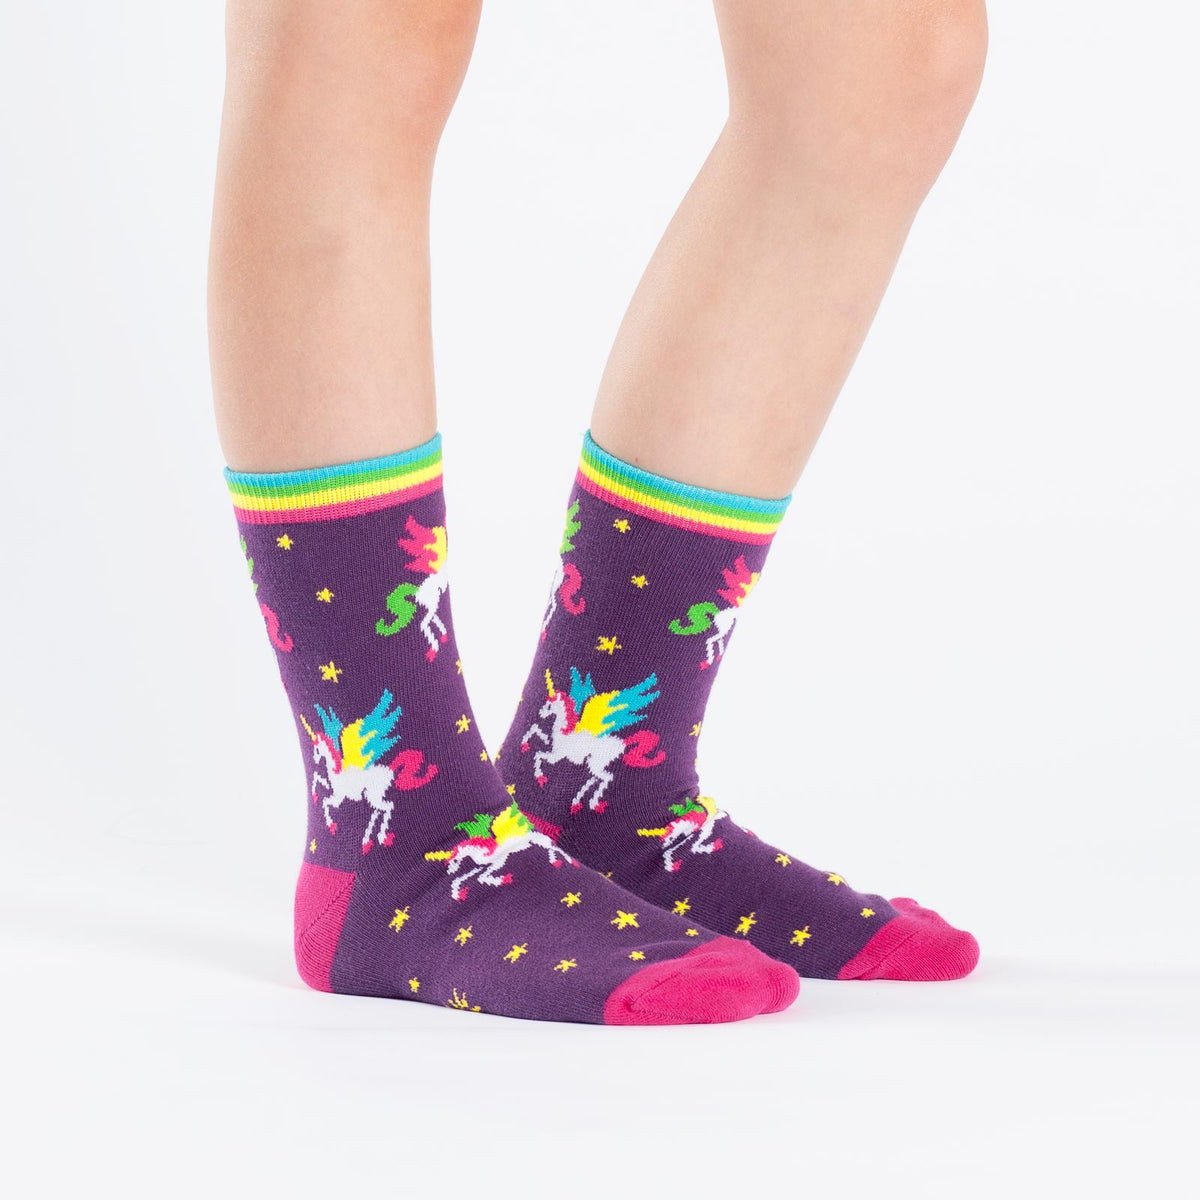 Winged rainbow unicorn socks for kids with mythical creatures flying through a purple sky.